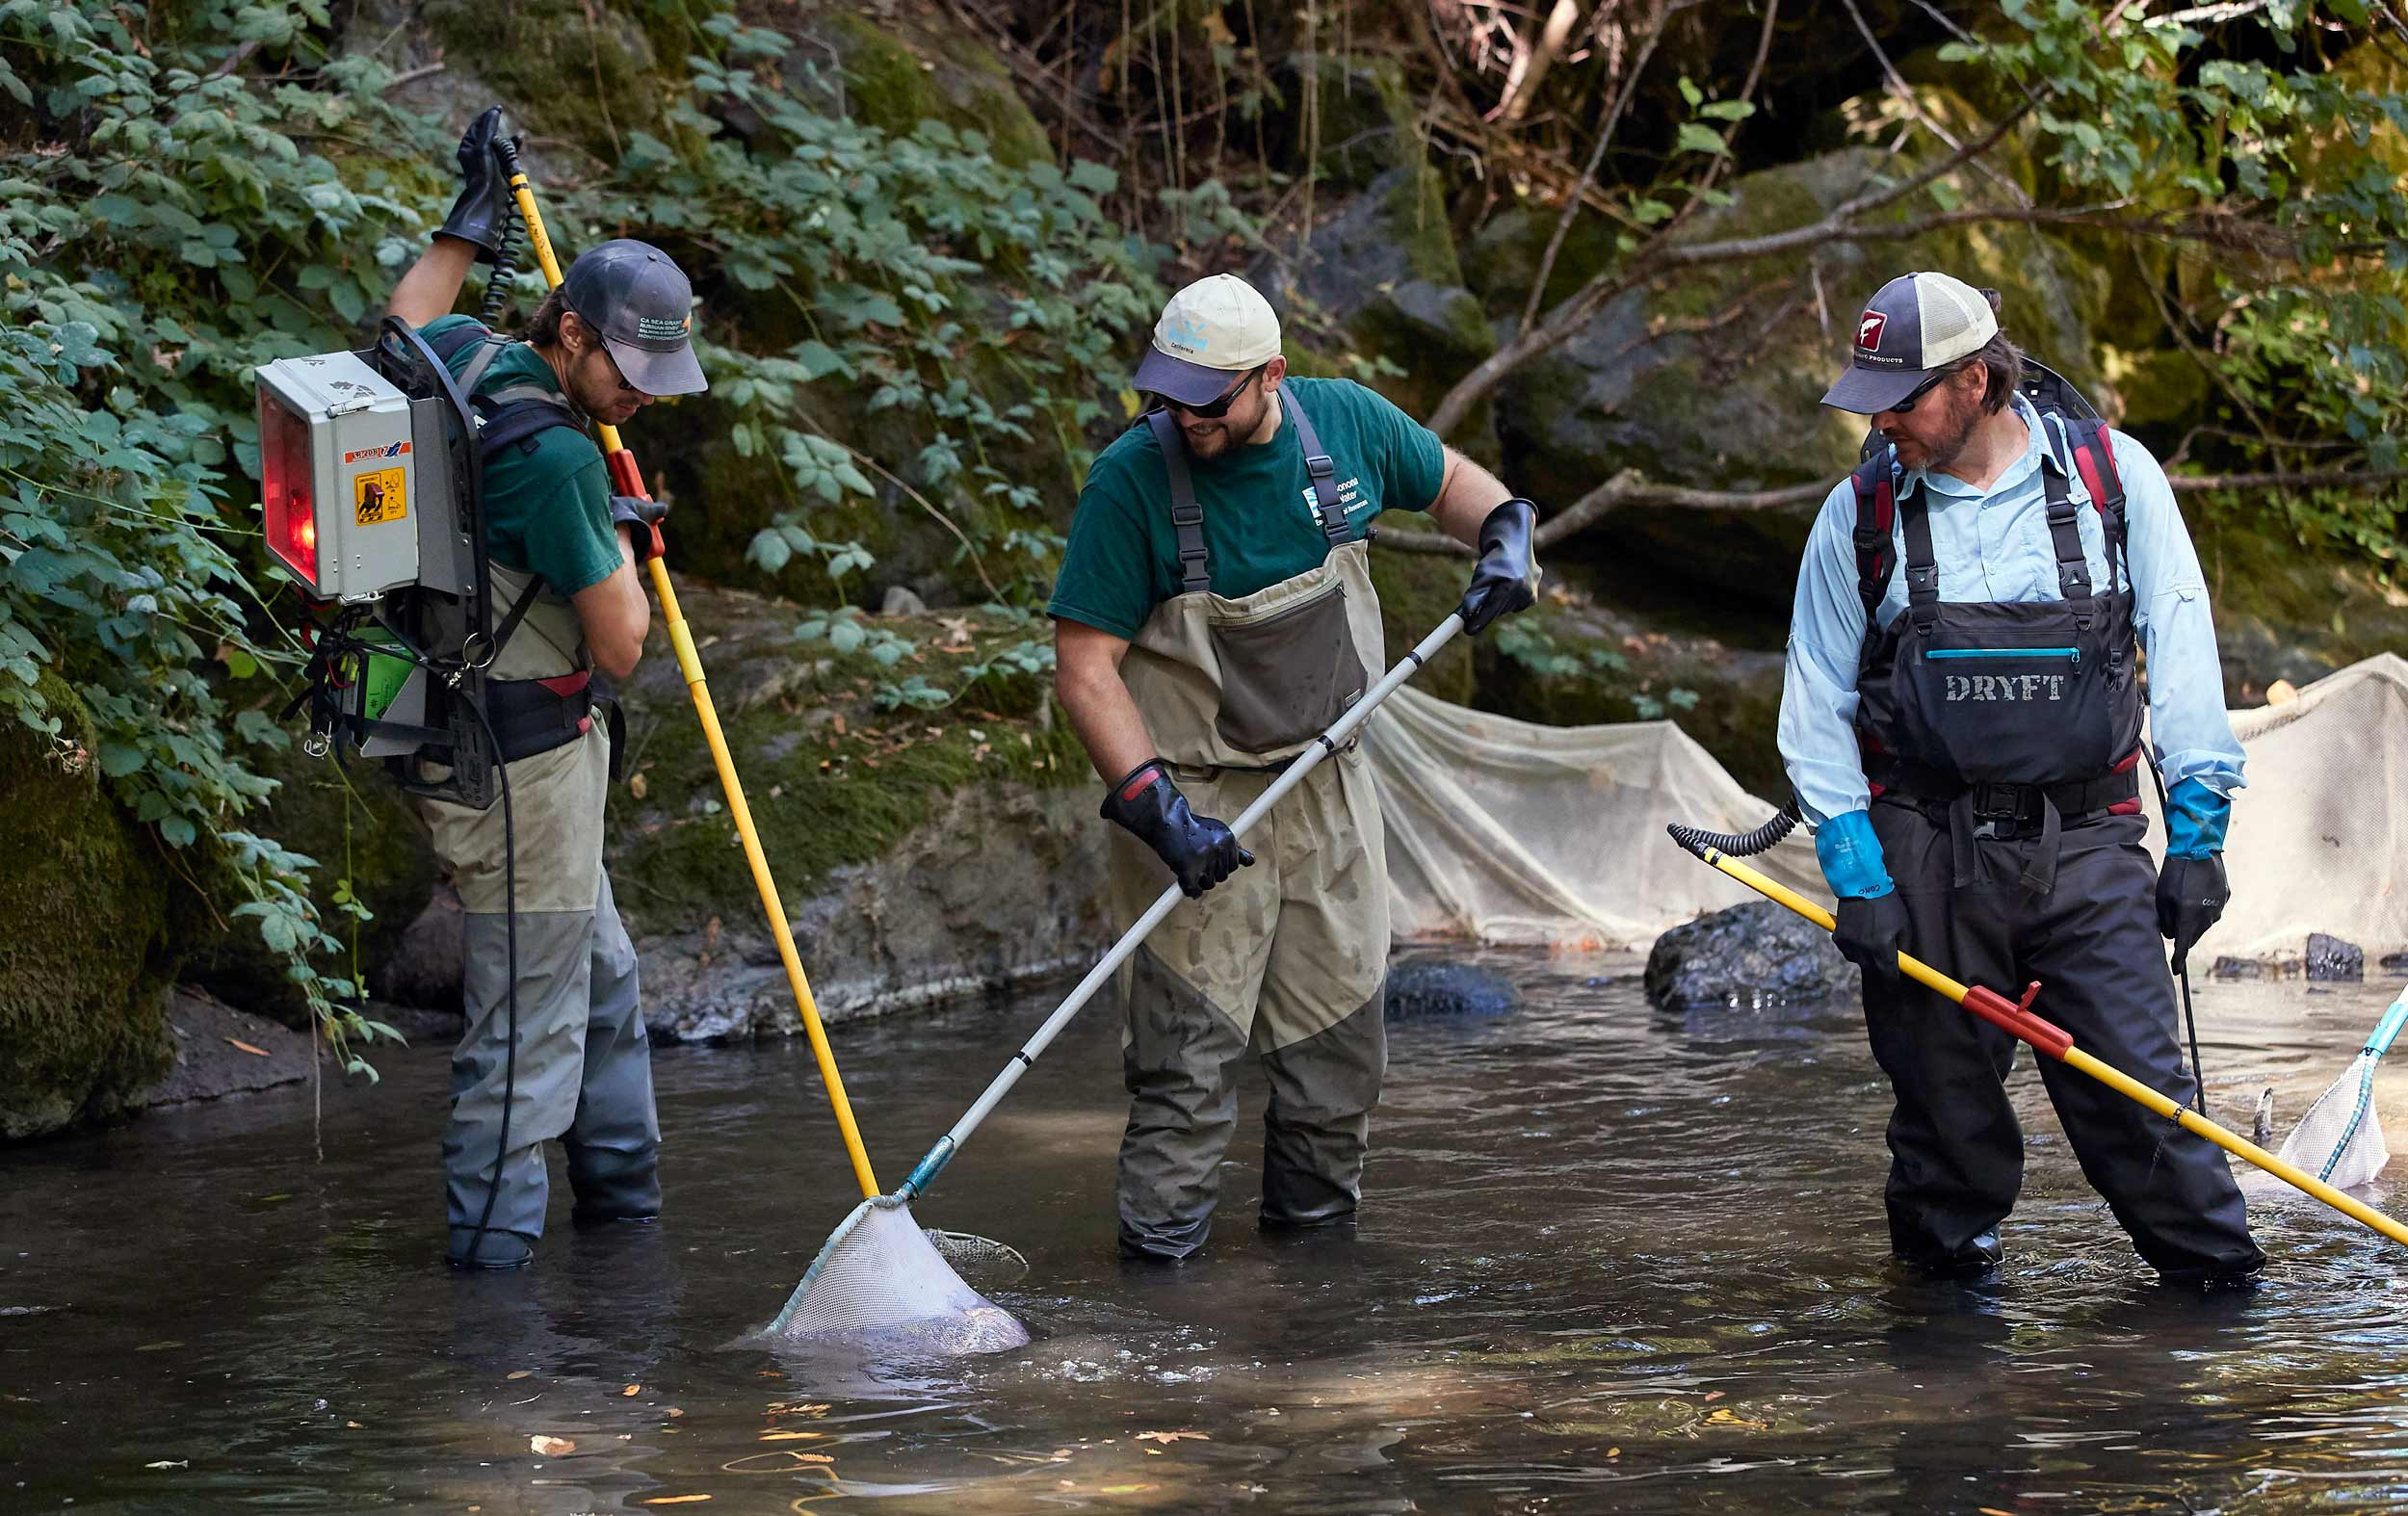 Researchers in Waders Electrofish in a Stream